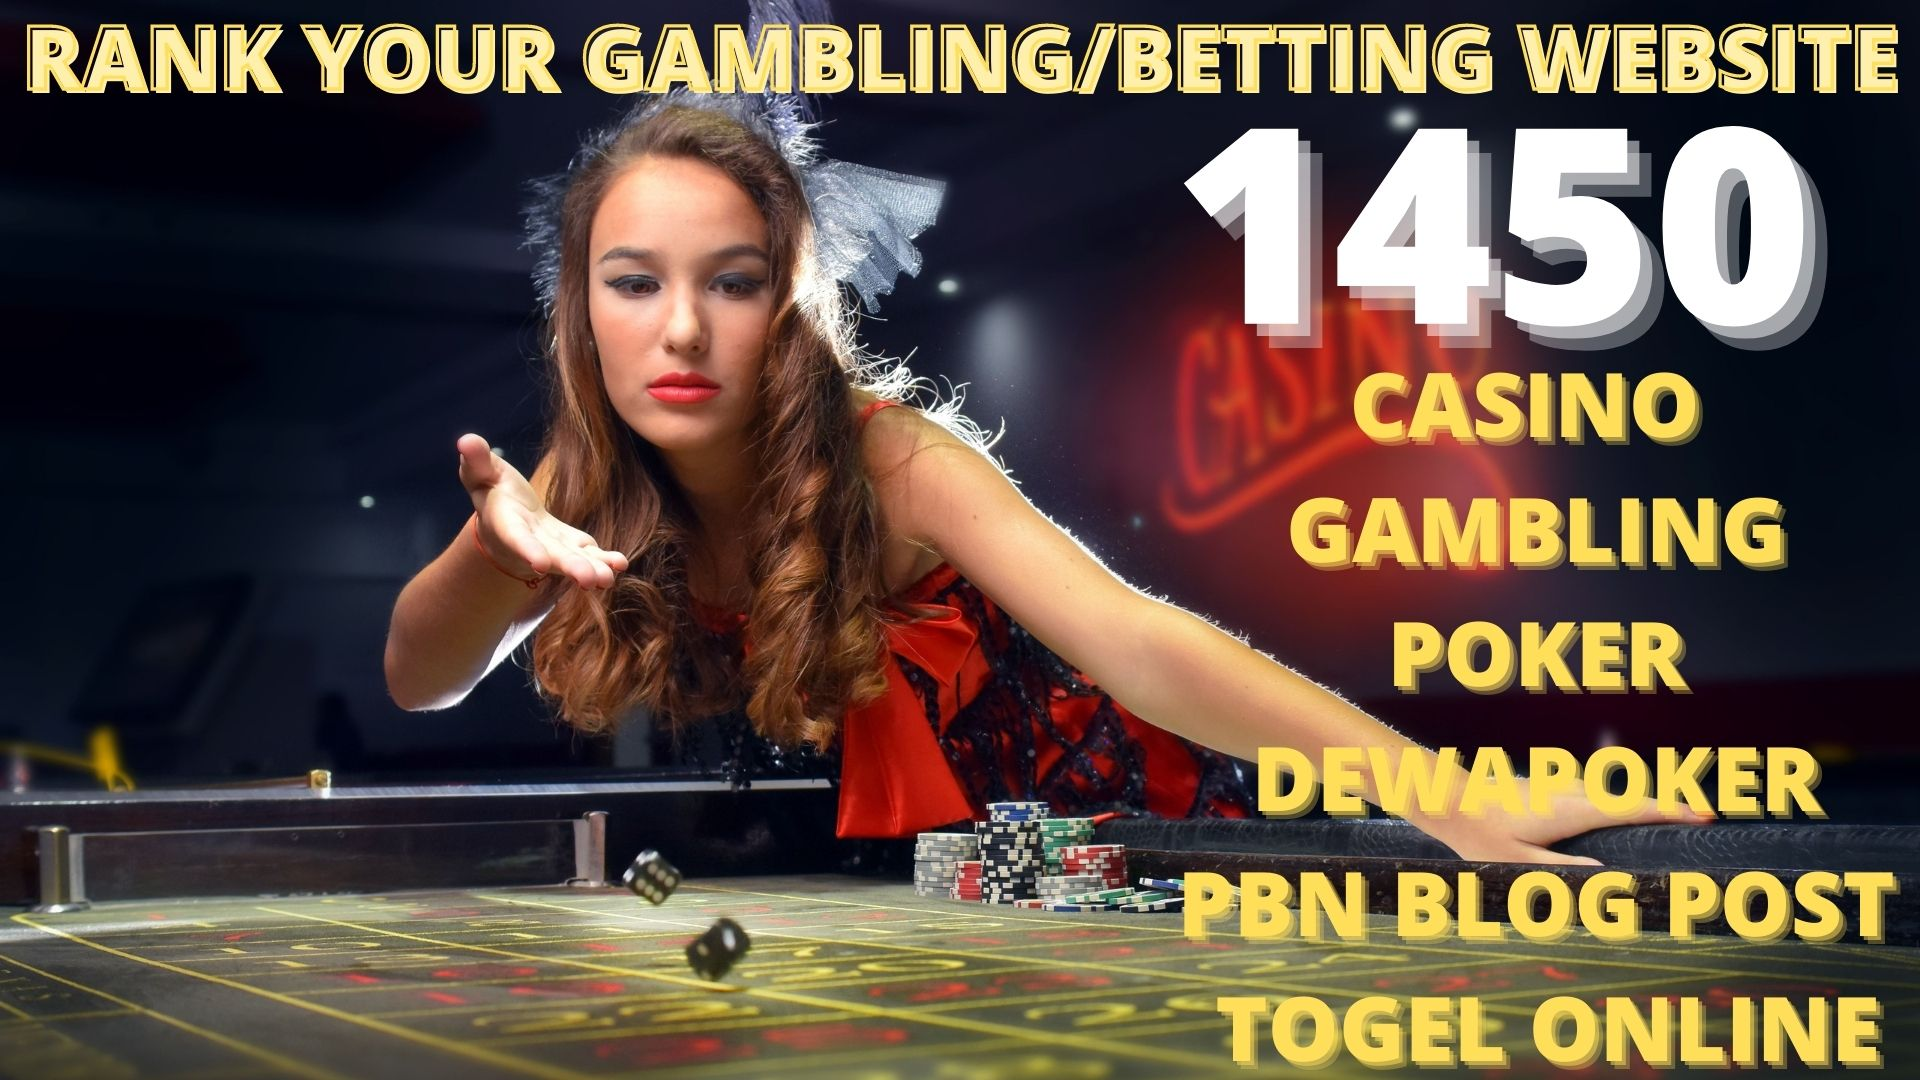 Buy x1 and get1 Absolut 1450 powerful Casino,  Gambling,  Poker,  Sports High Quality Web2.0 Backlinks